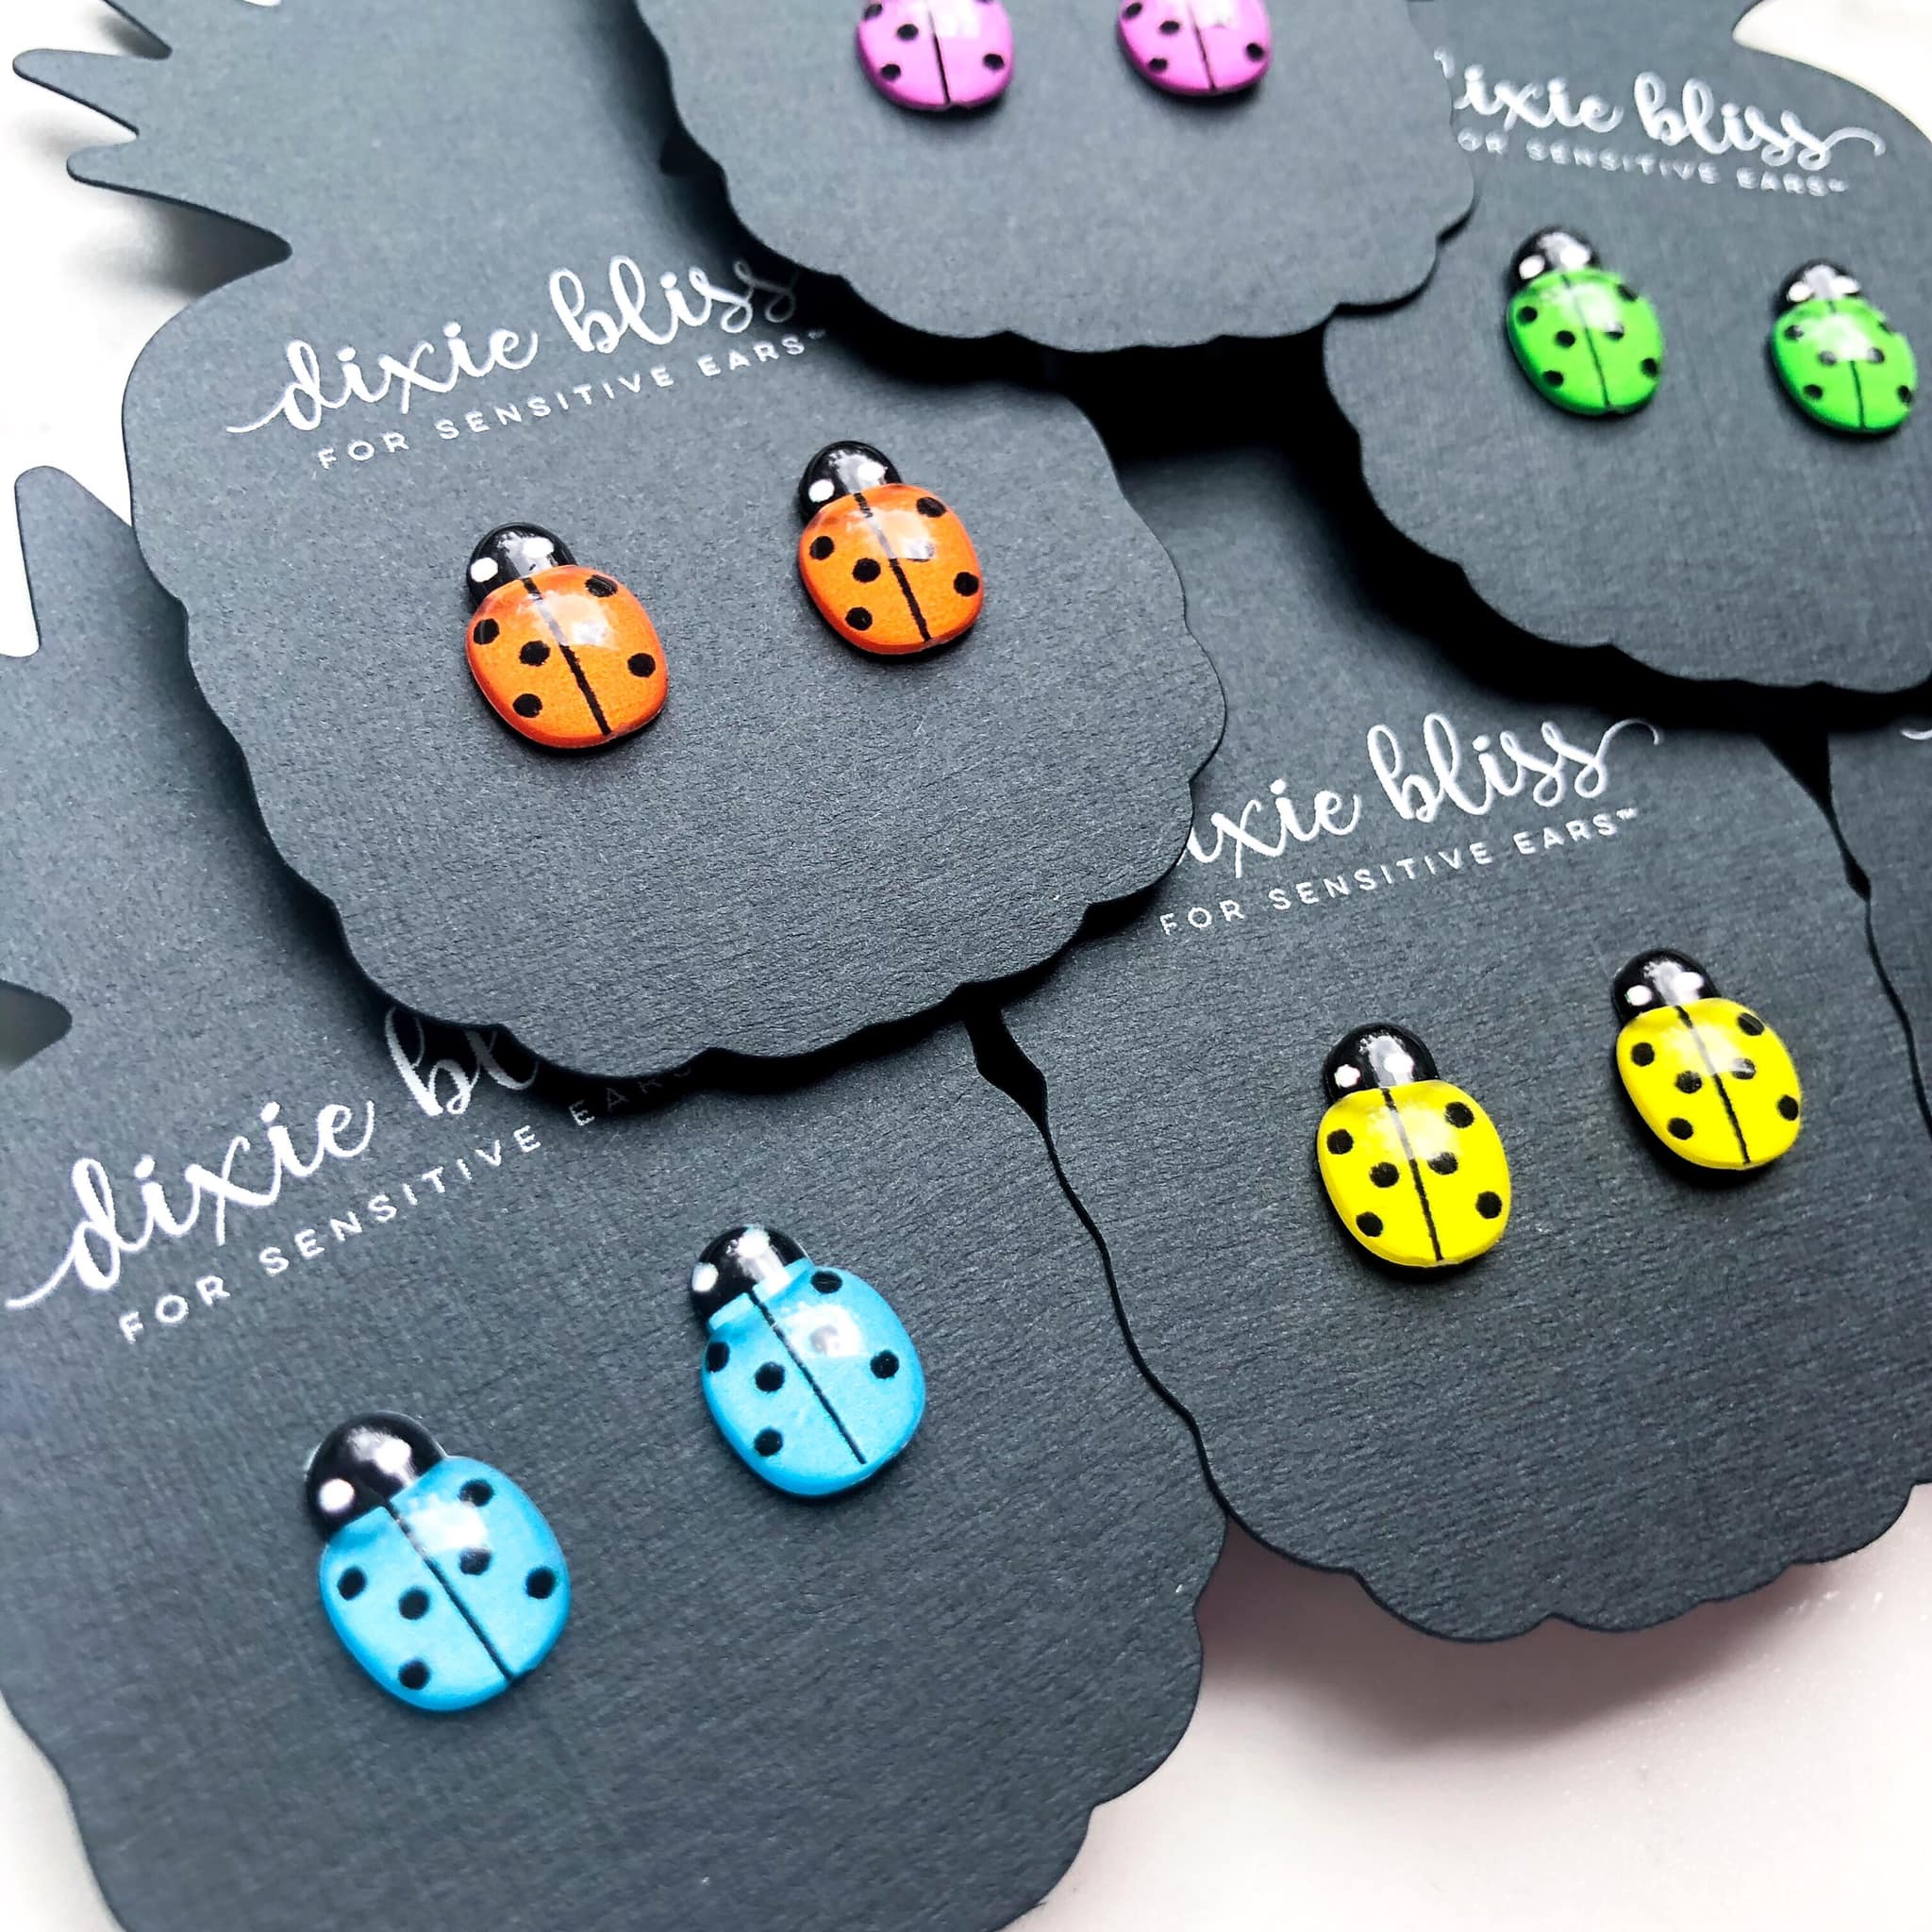 Dixie Bliss Earrings: Ladybugs